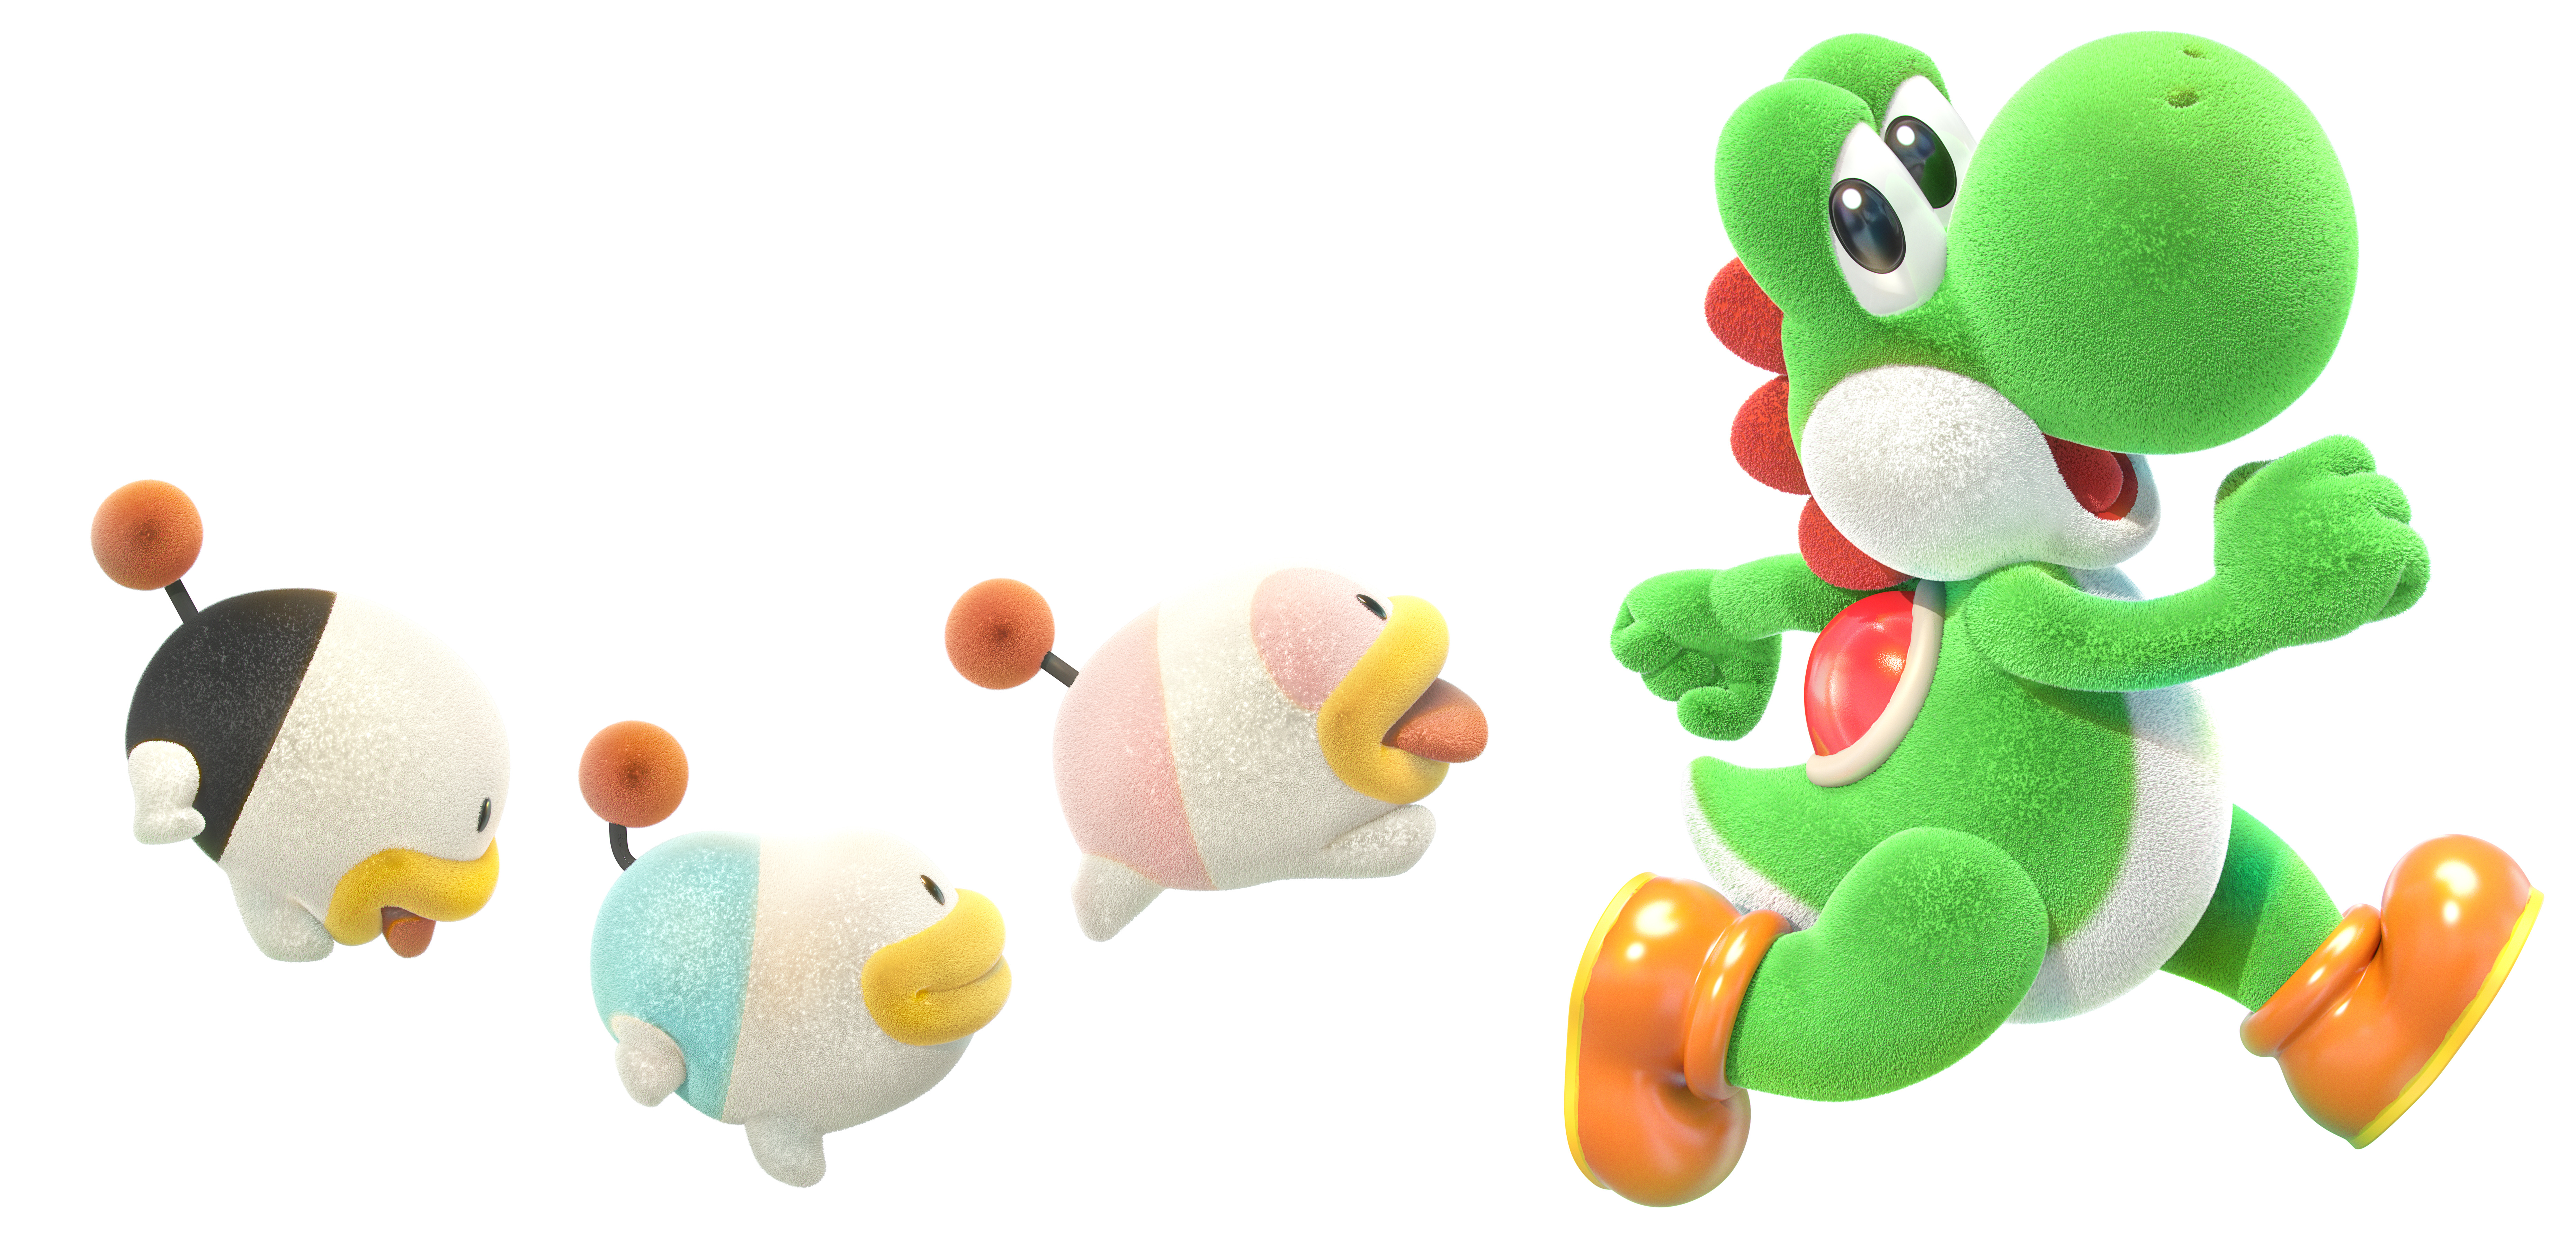 Yoshi's Crafted World Render 5